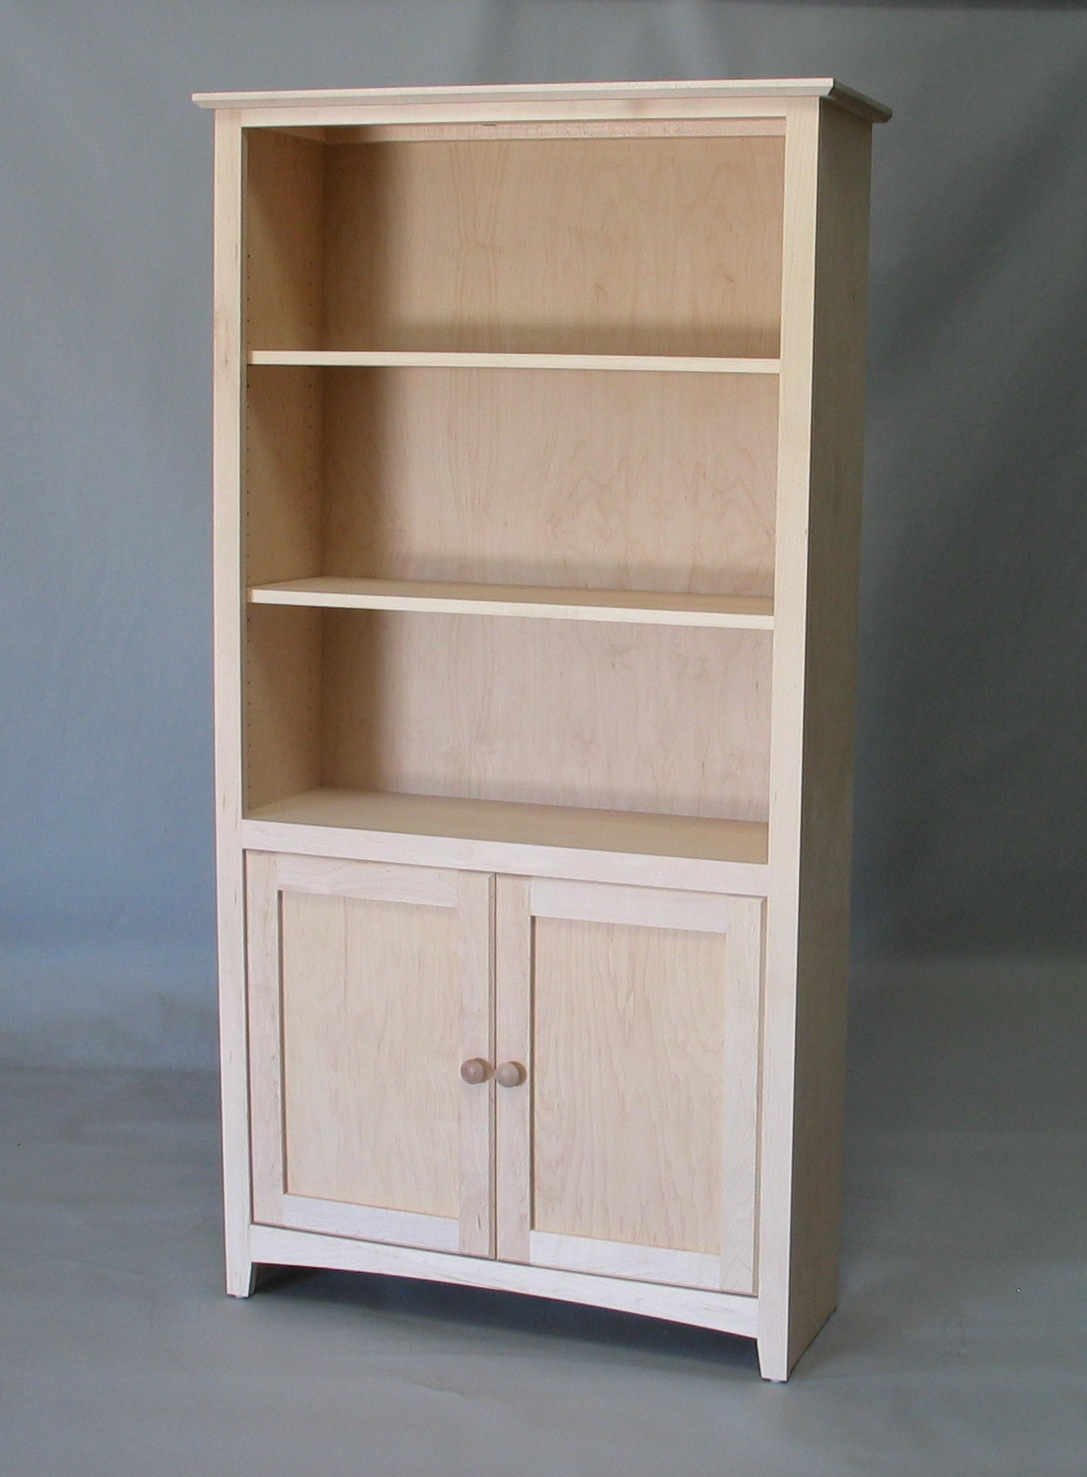 Maple Shaker Bookcase With Door Kit Unfinished 21 3872 13